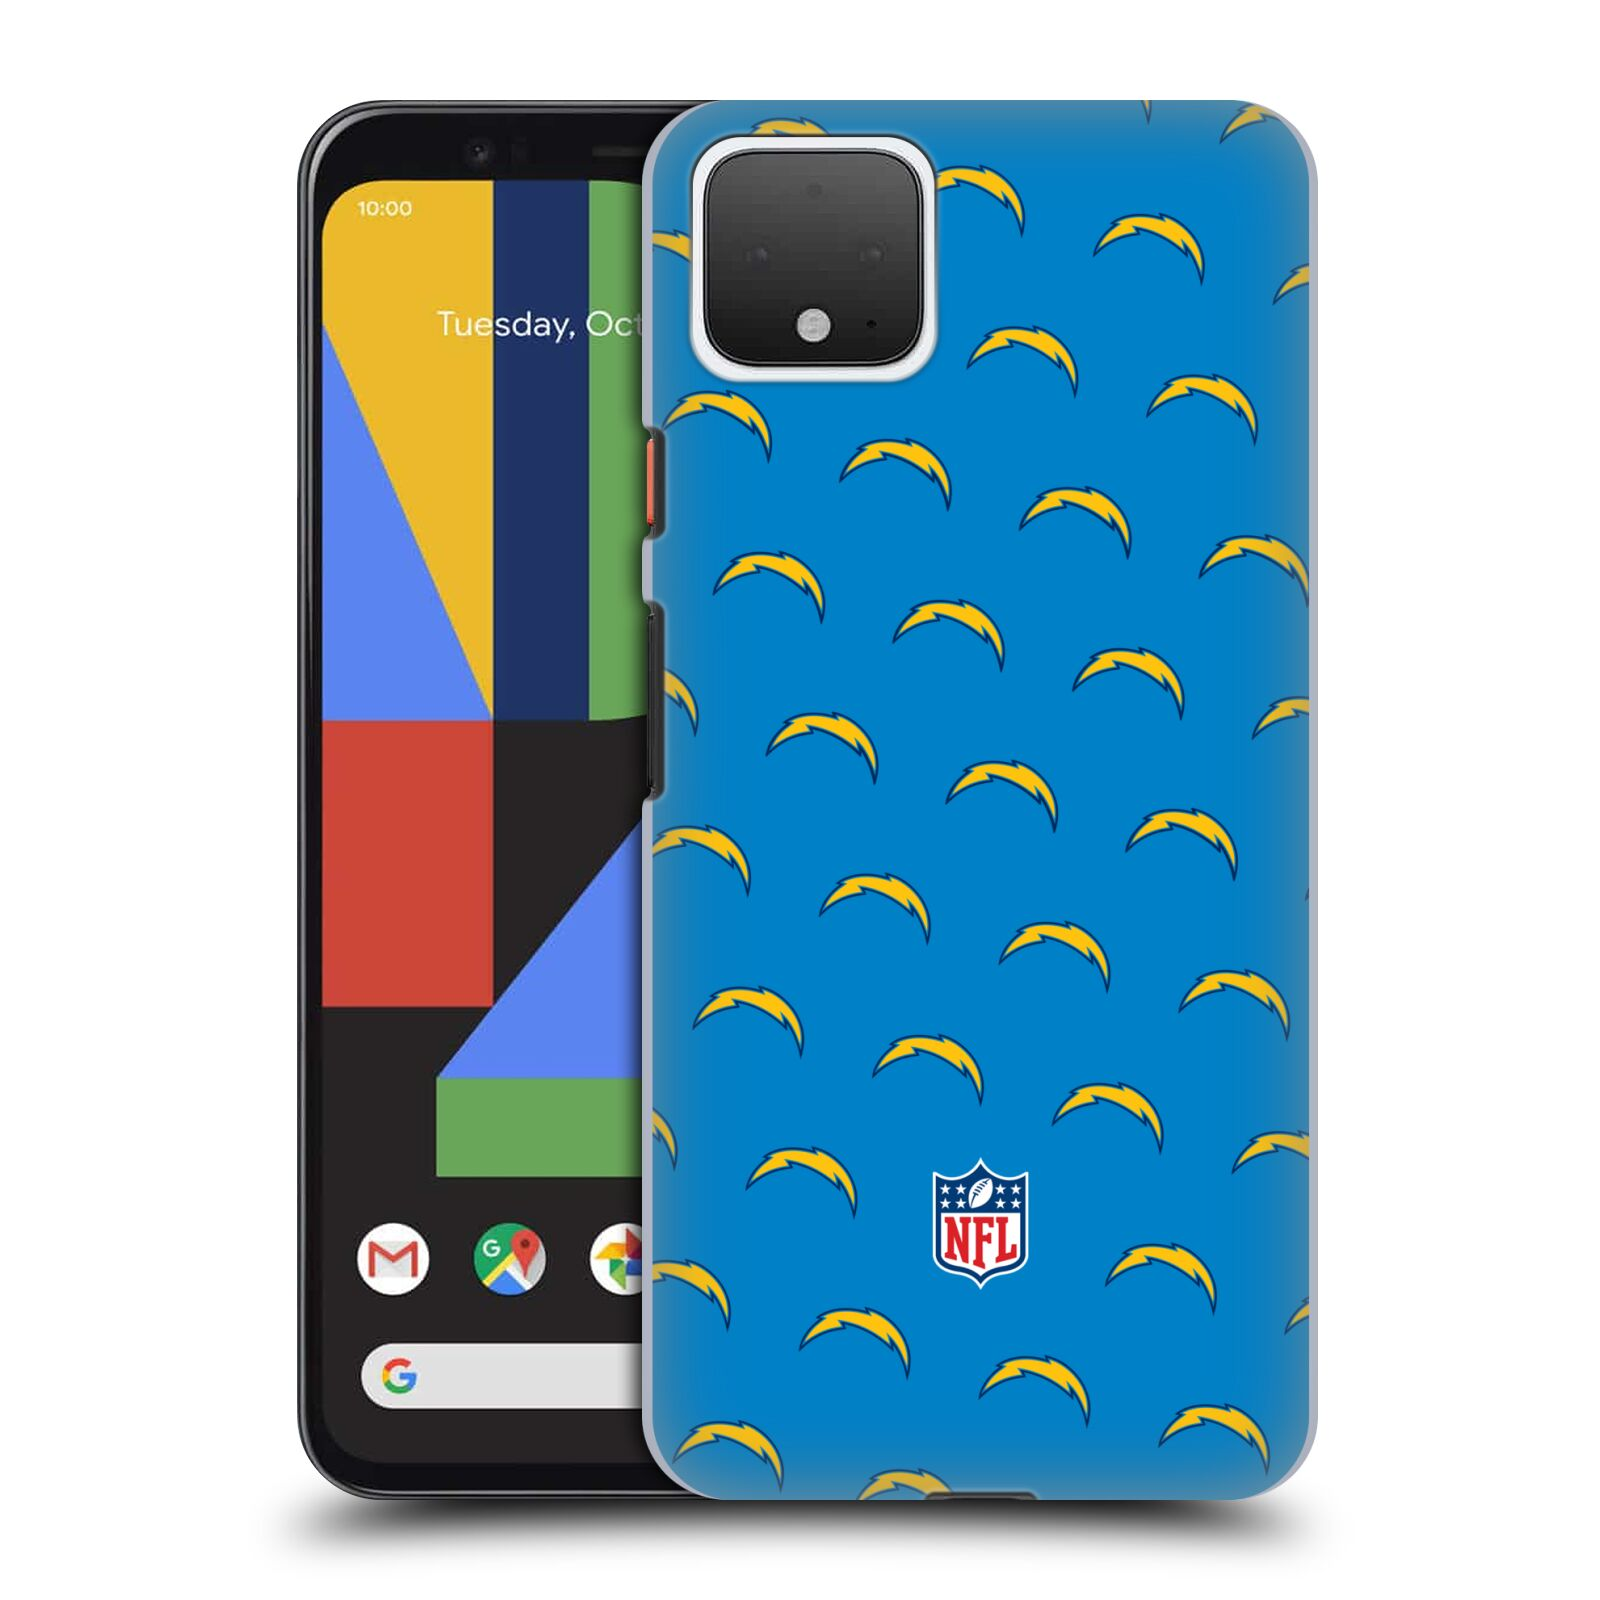 Official NFL 2017/18 Los Angeles Chargers Patterns Case for Google Pixel 4